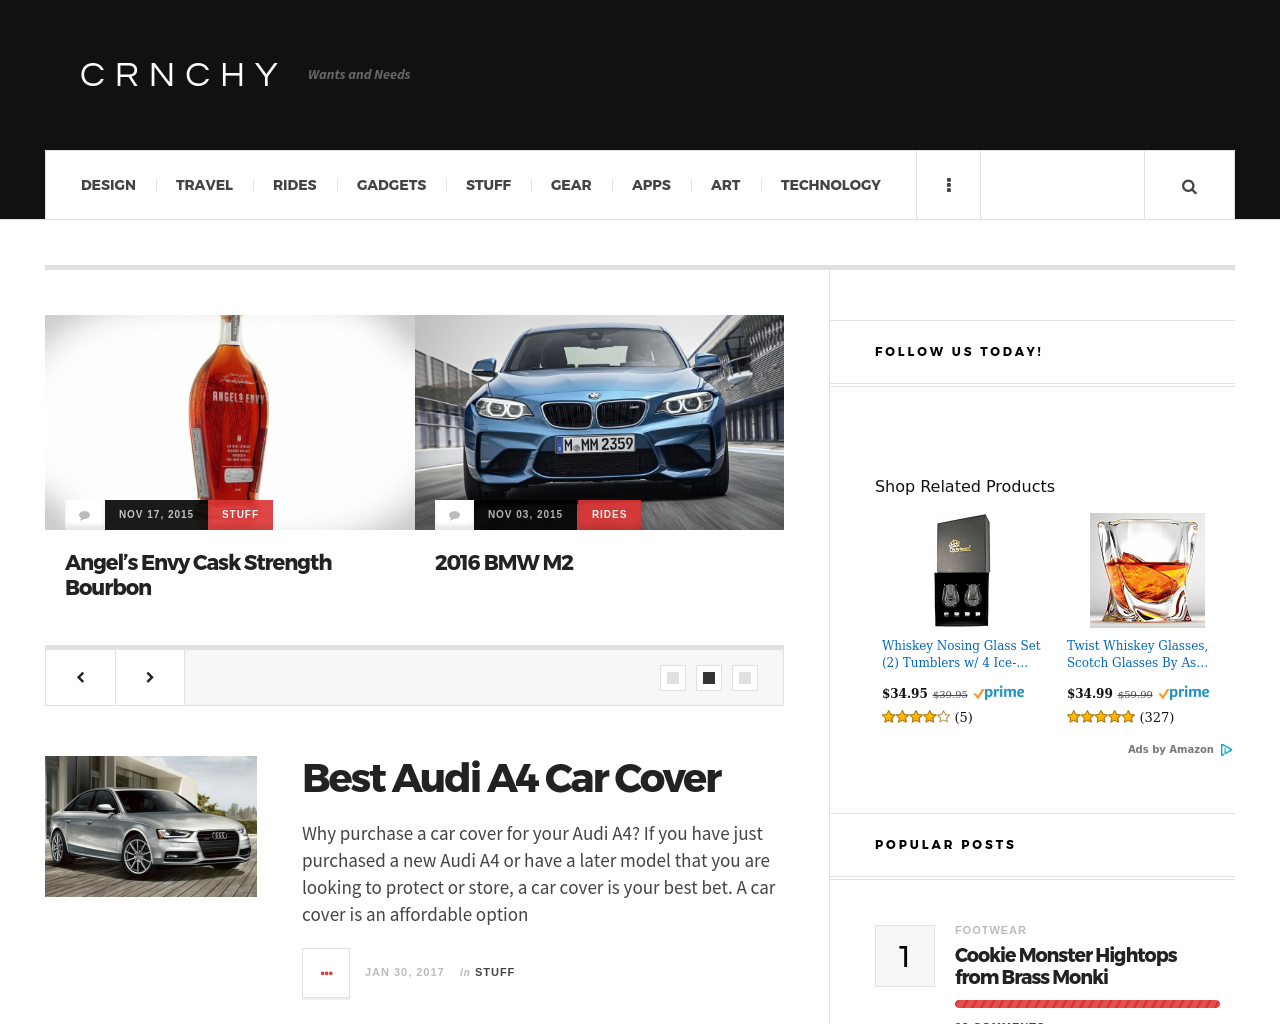 Crnchy-Advertising-Reviews-Pricing